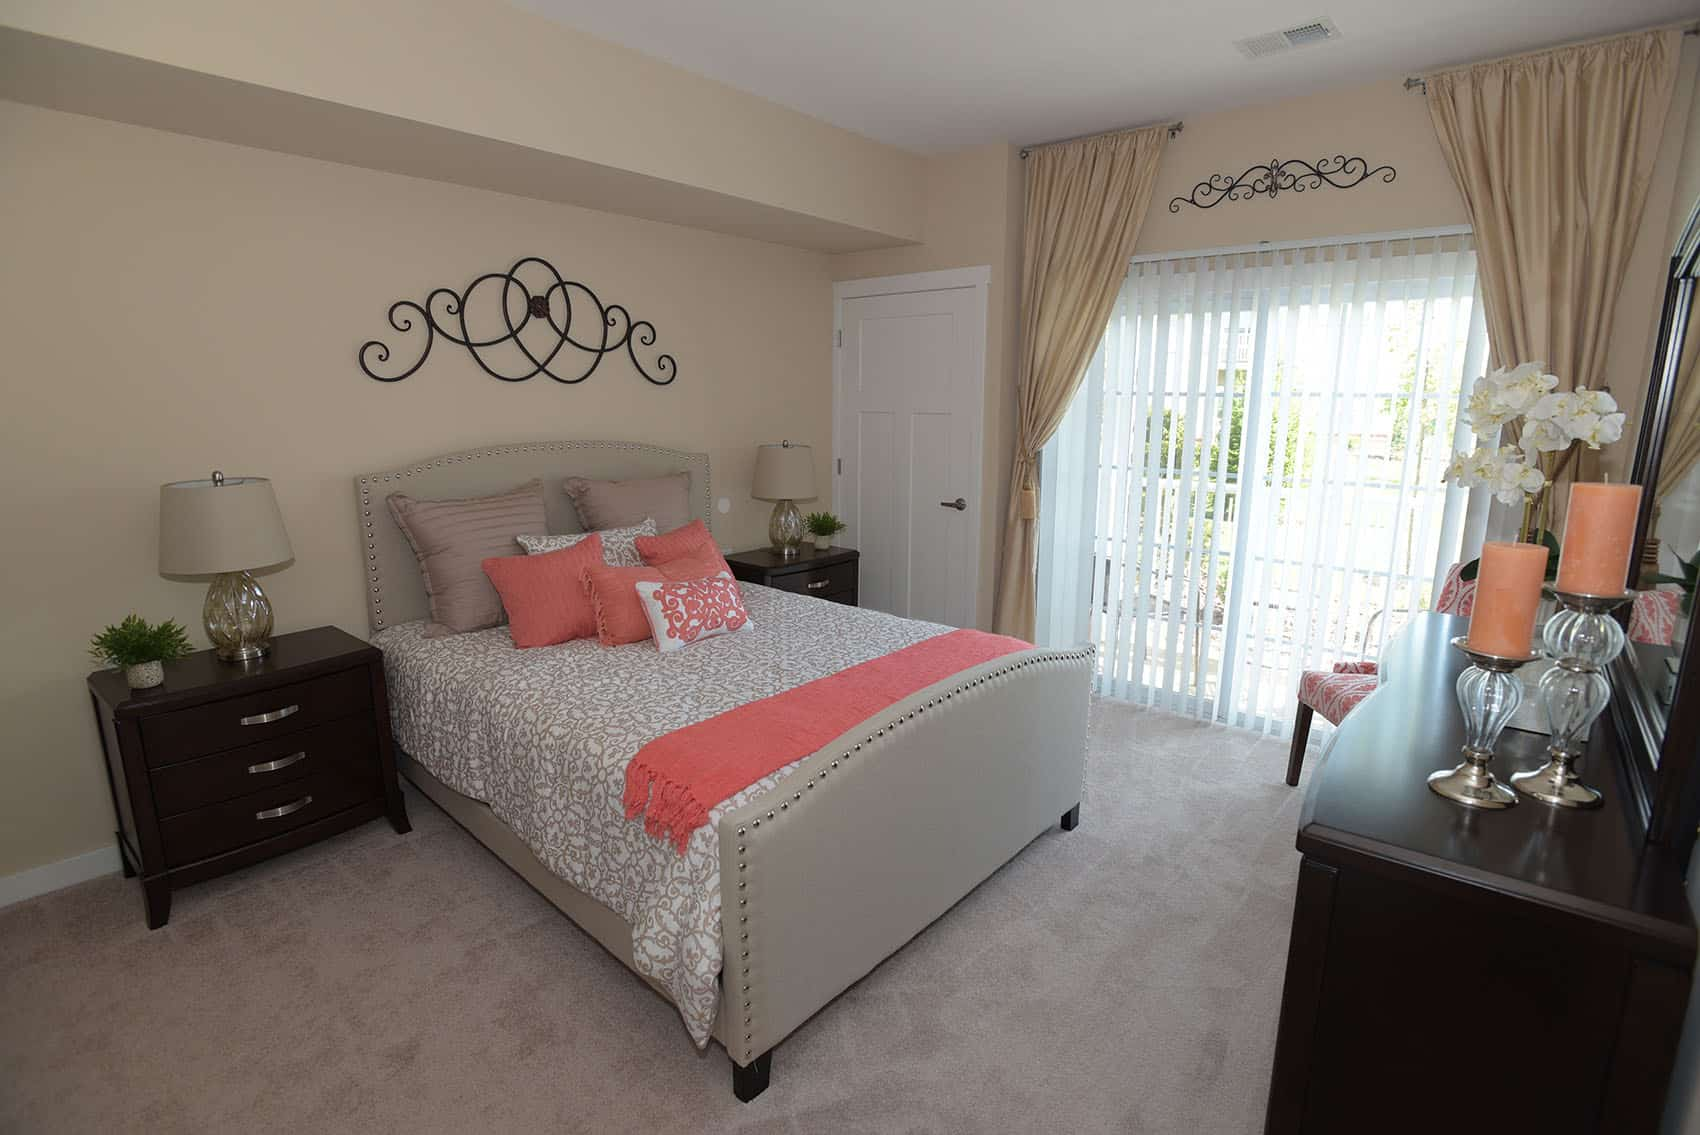 Master Bedroom with carpet flooring and bed with wooden nightstands